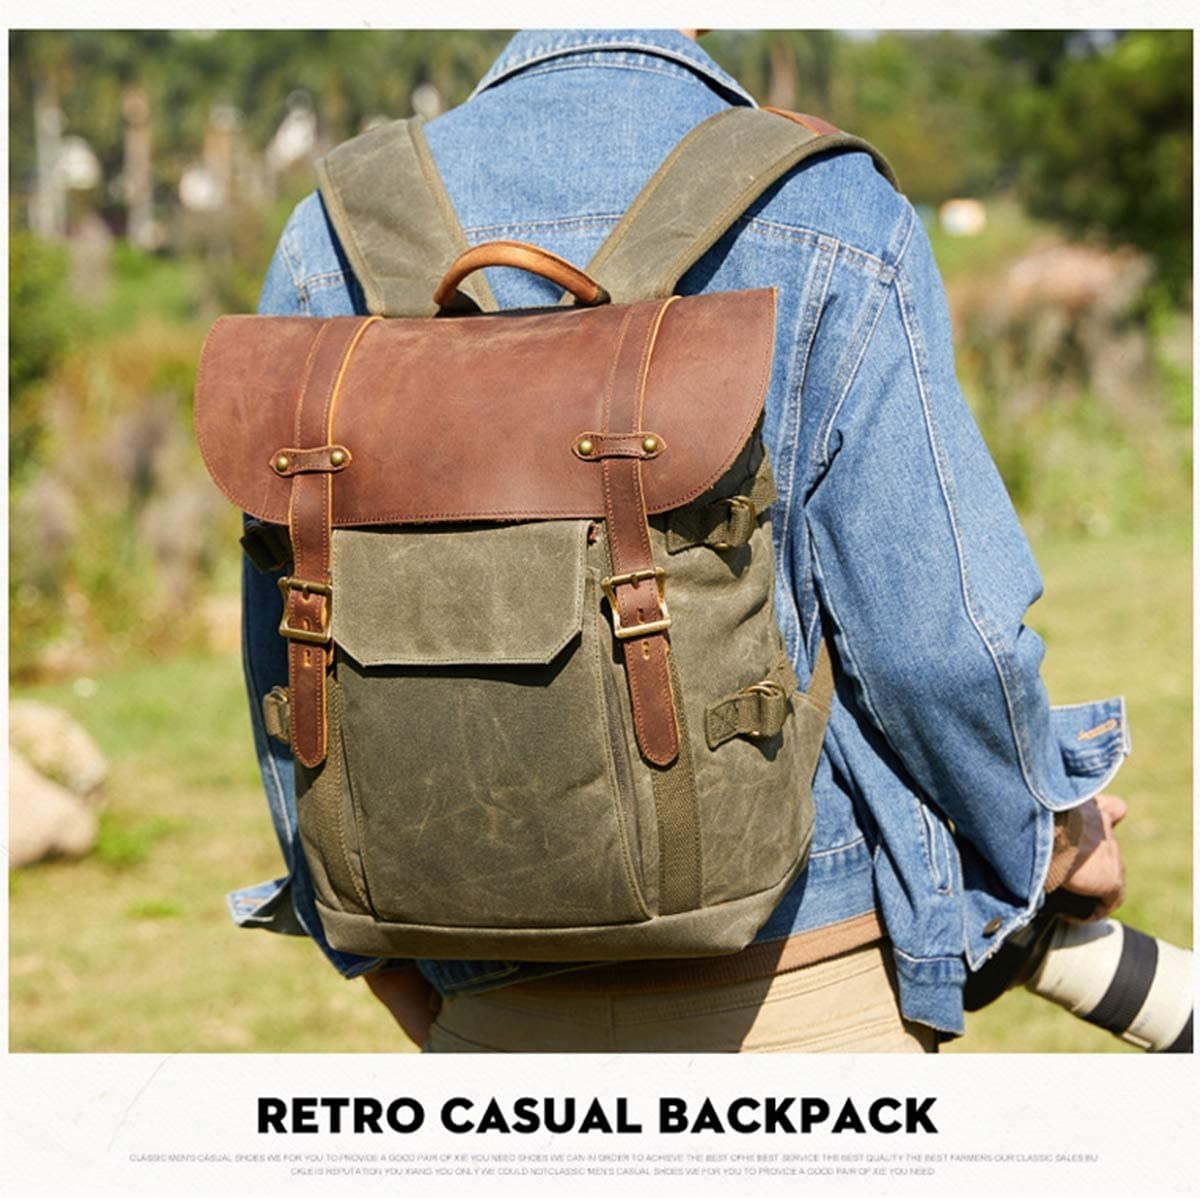 OLDFAI Camera Bag Backpack Canvas DSLR//SLR//Mirrorless Waterproof for Nikon Canon Sony Lens Accessories Vintage with 15 Laptop Compartment and Tripod Strap for Photographer Hiking,ArmyGreen